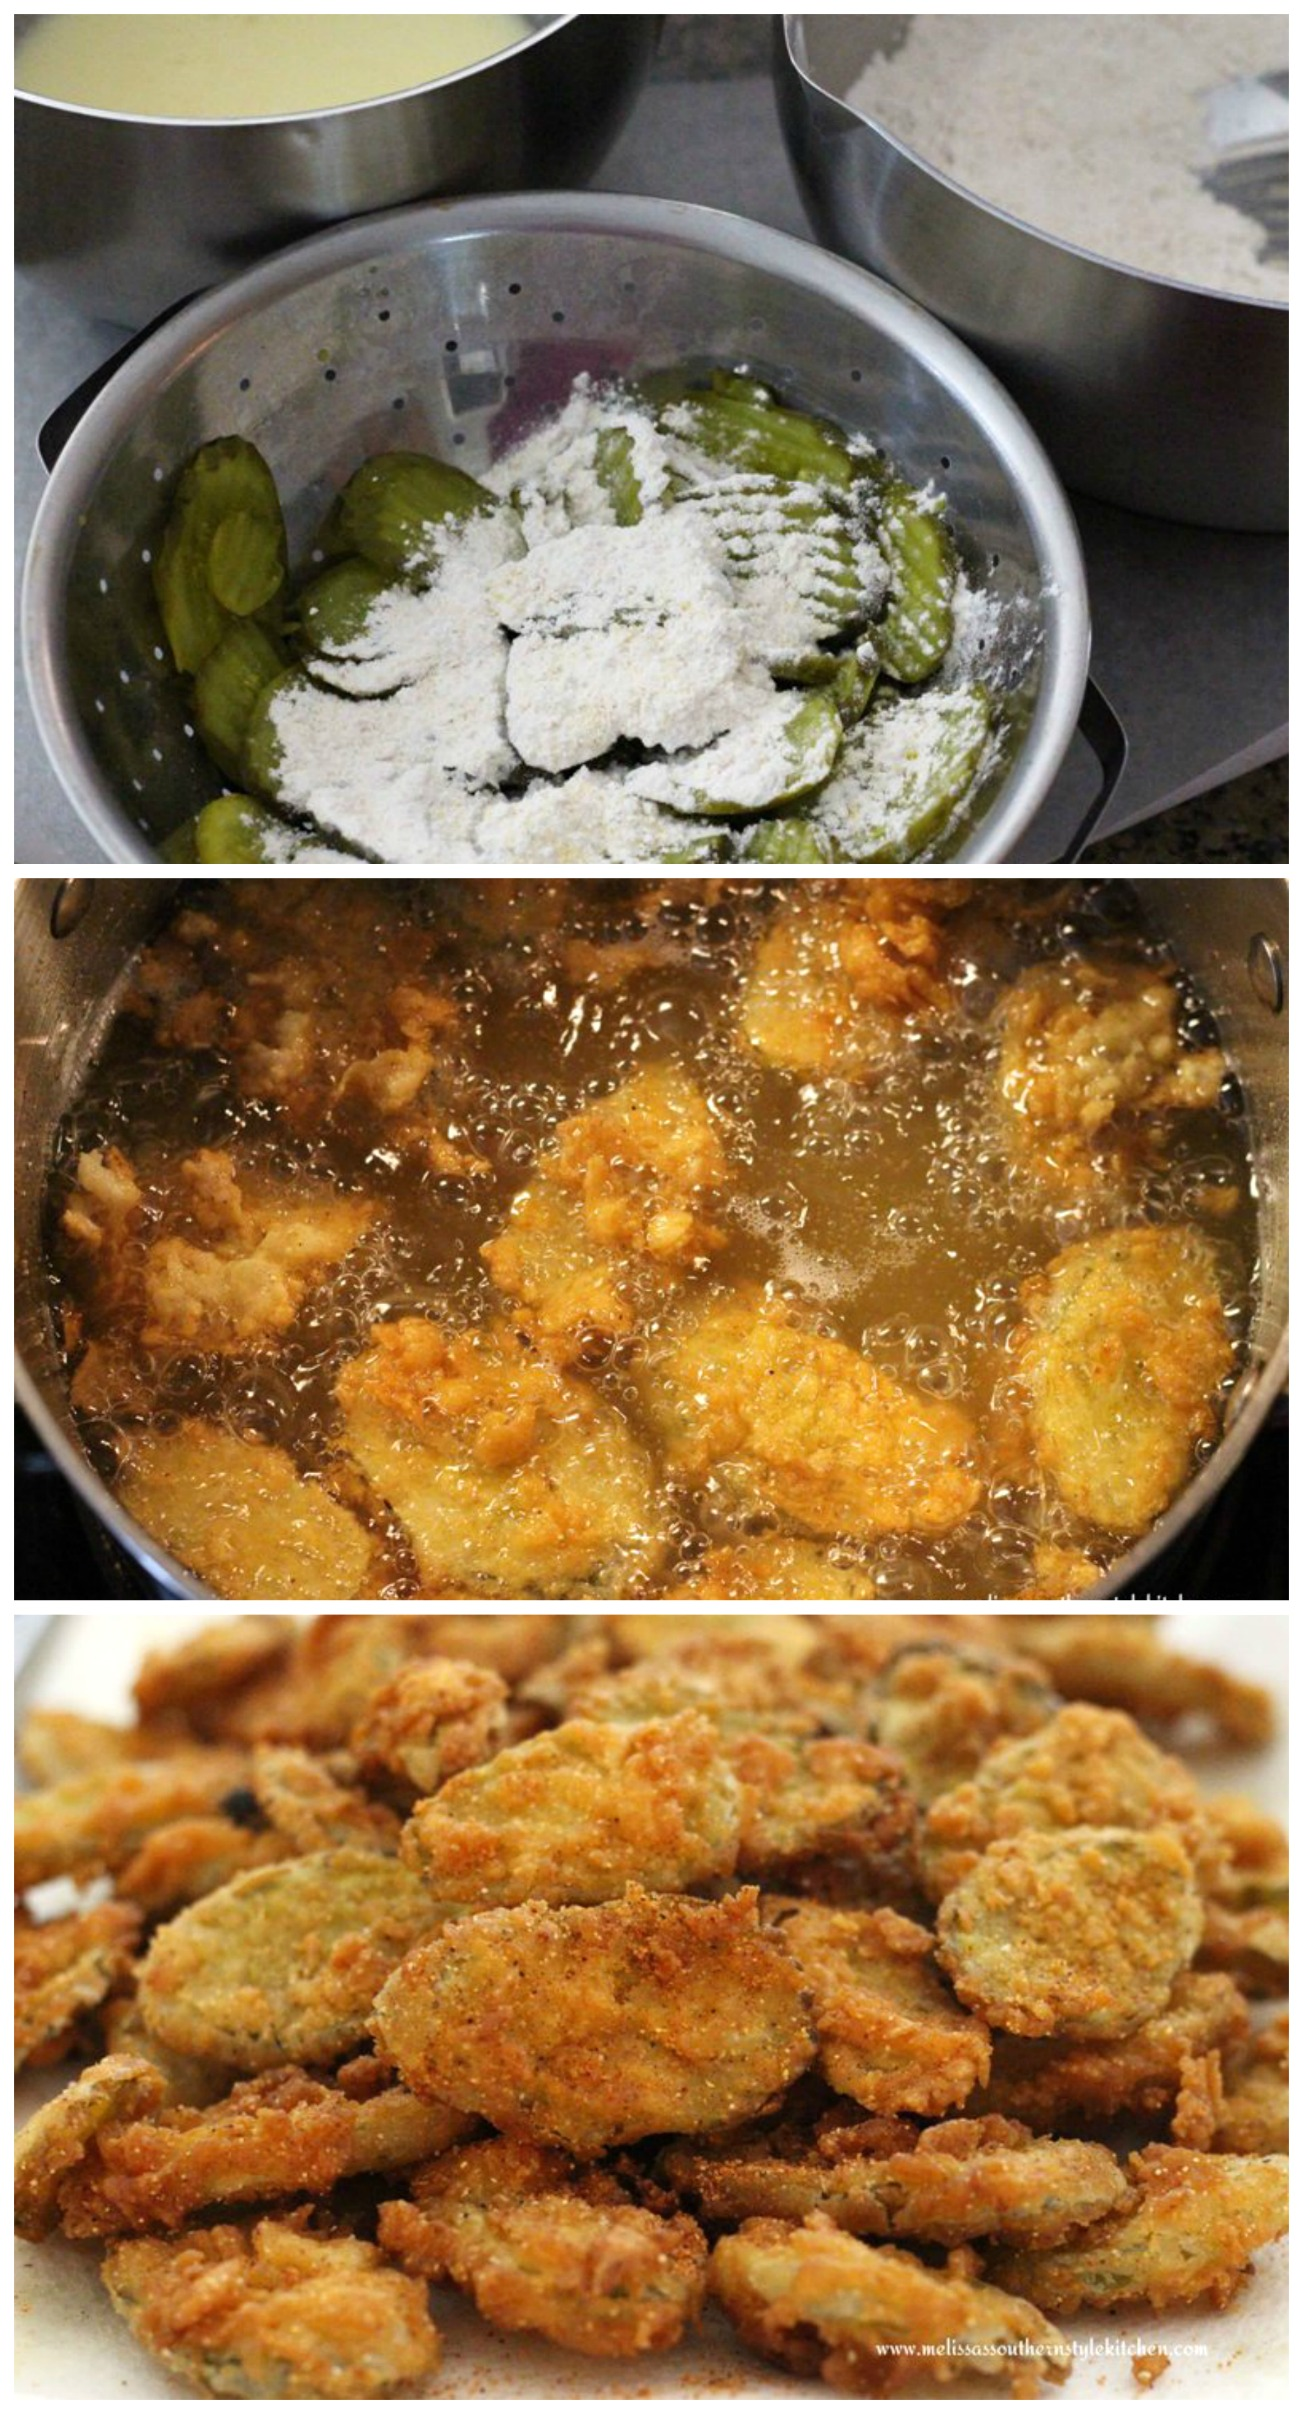 step by step images and ingredients to make Fried Dill Pickles with Creole Dipping Sauce